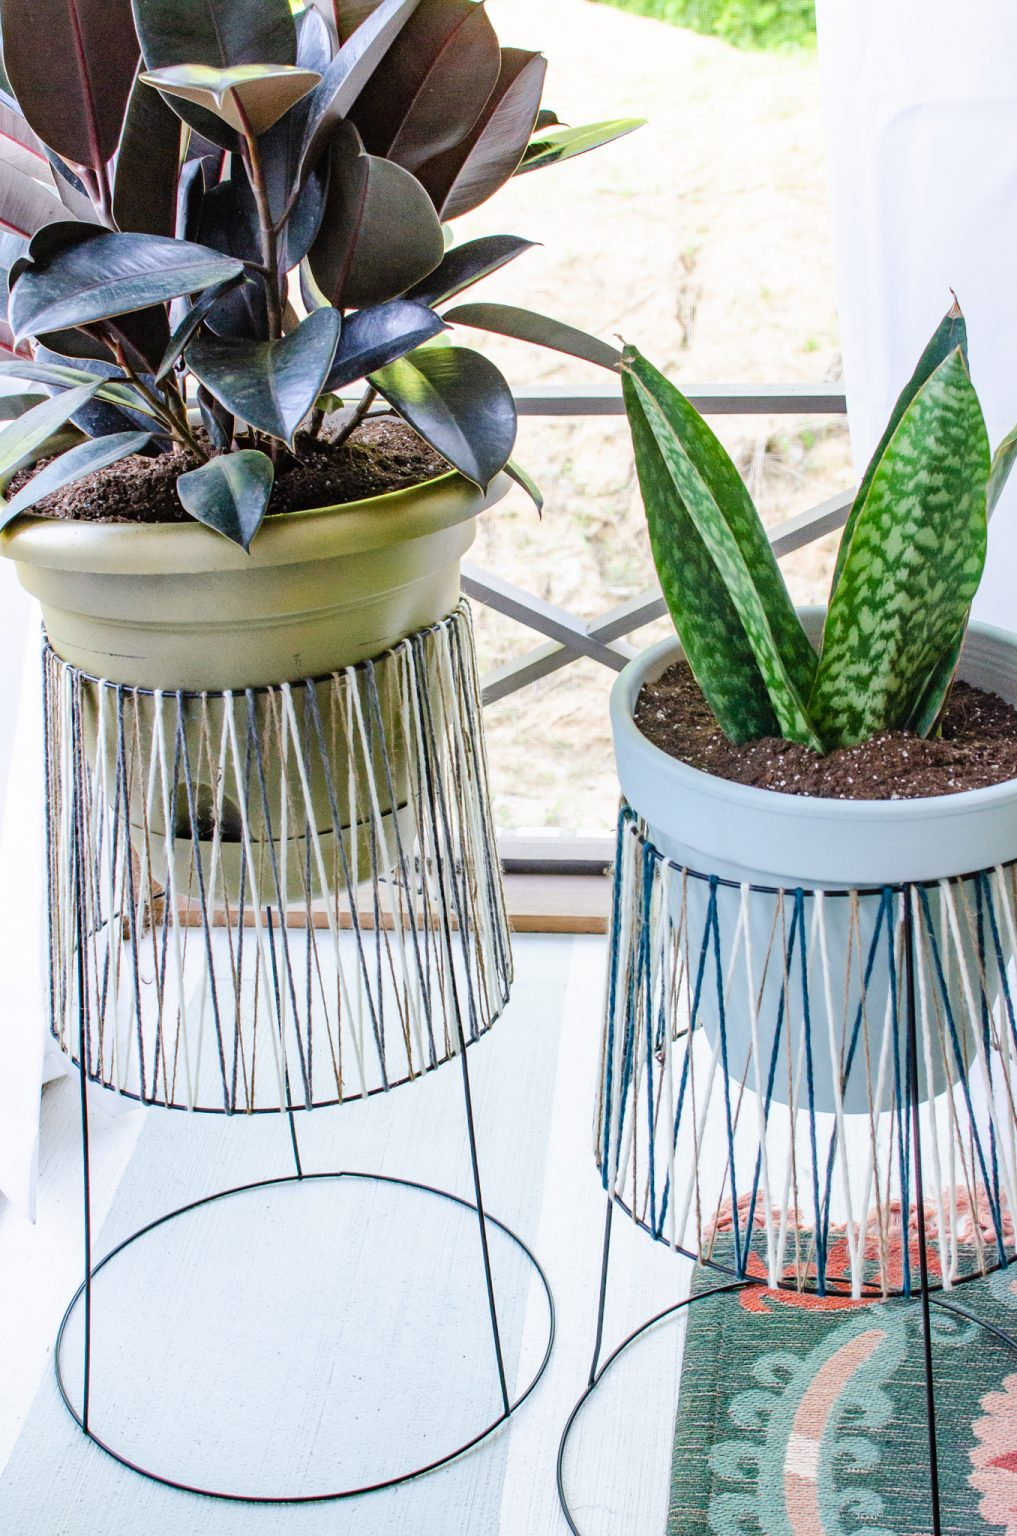 How to Make a Diy Plant Stand With a Tomato Cage by Haute House Love